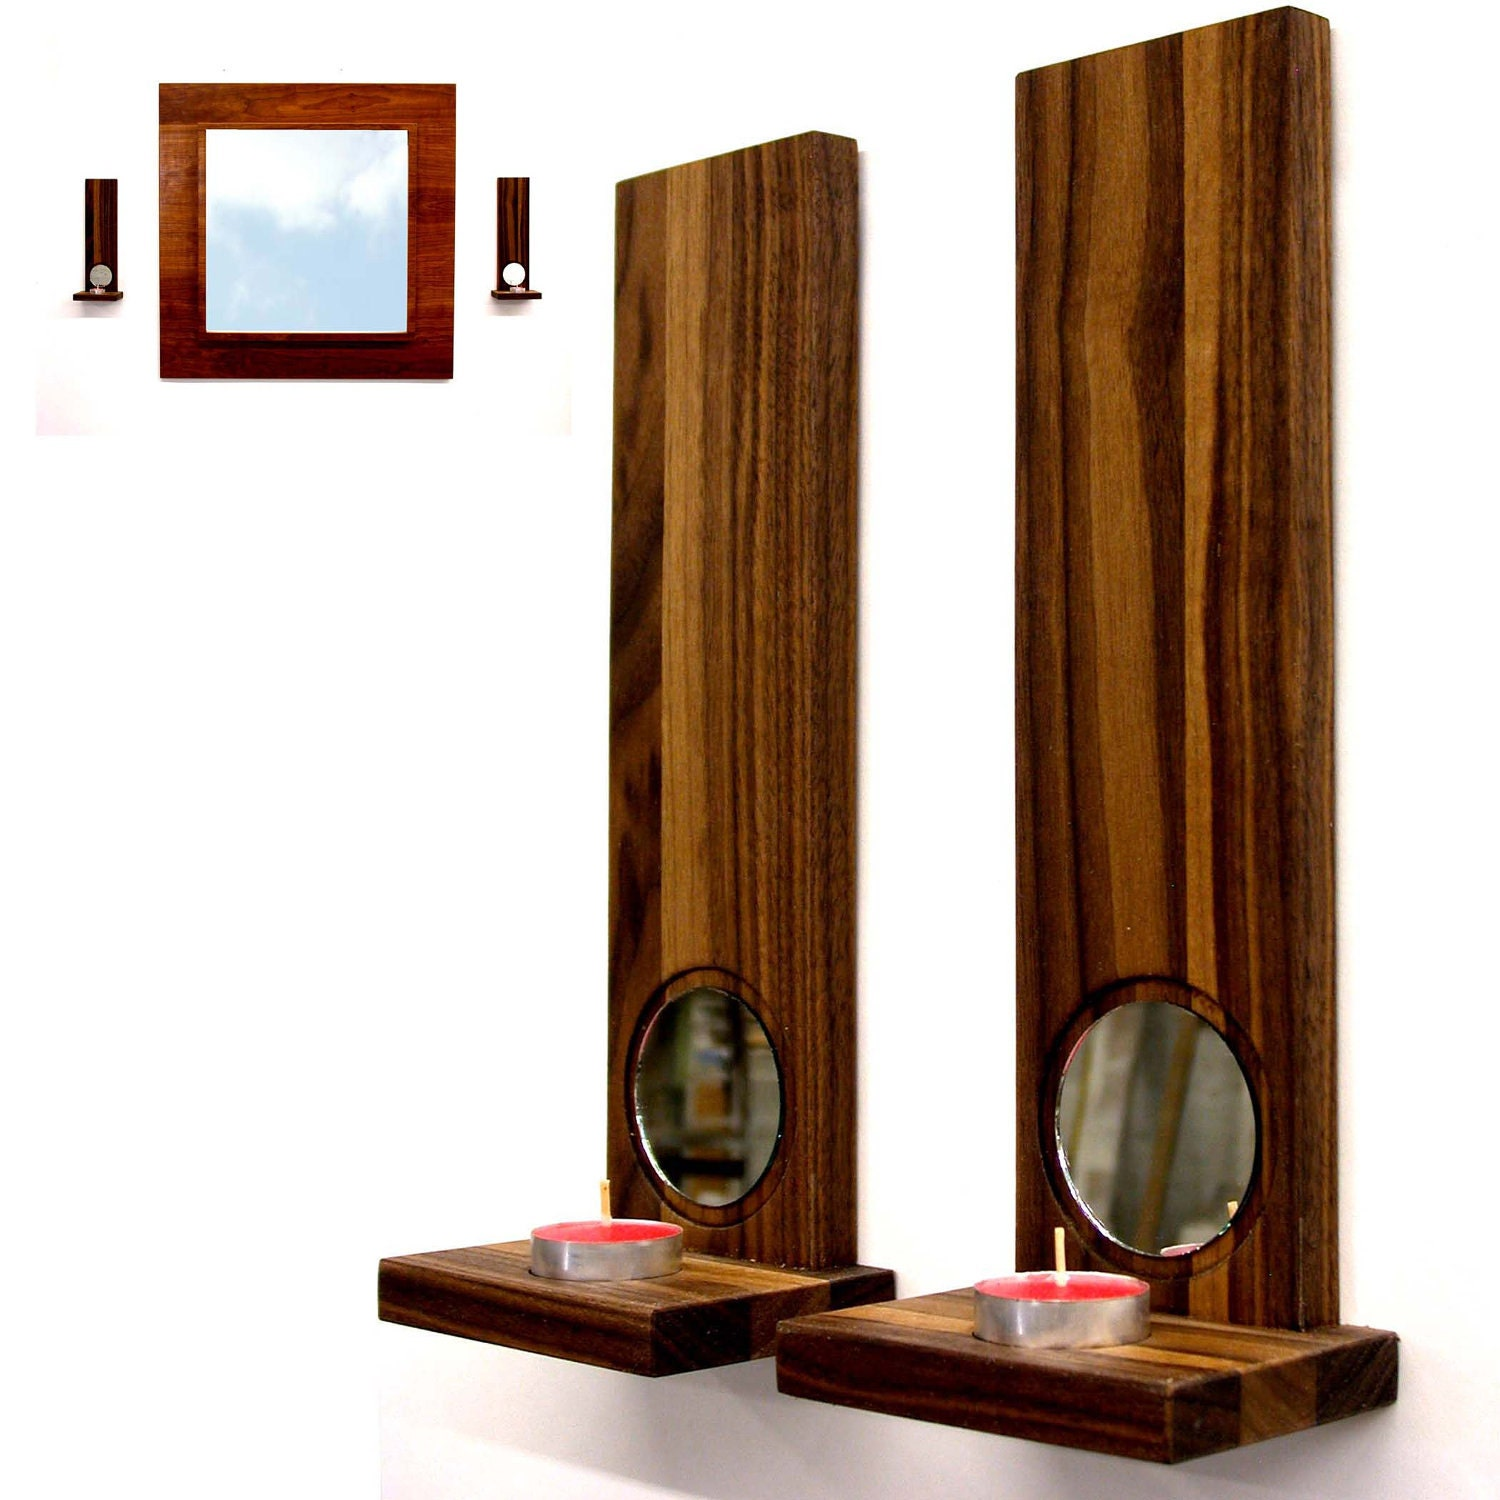 Modern Design Wall Sconces : Modern wall sconces candle holders home decor Walnut duo